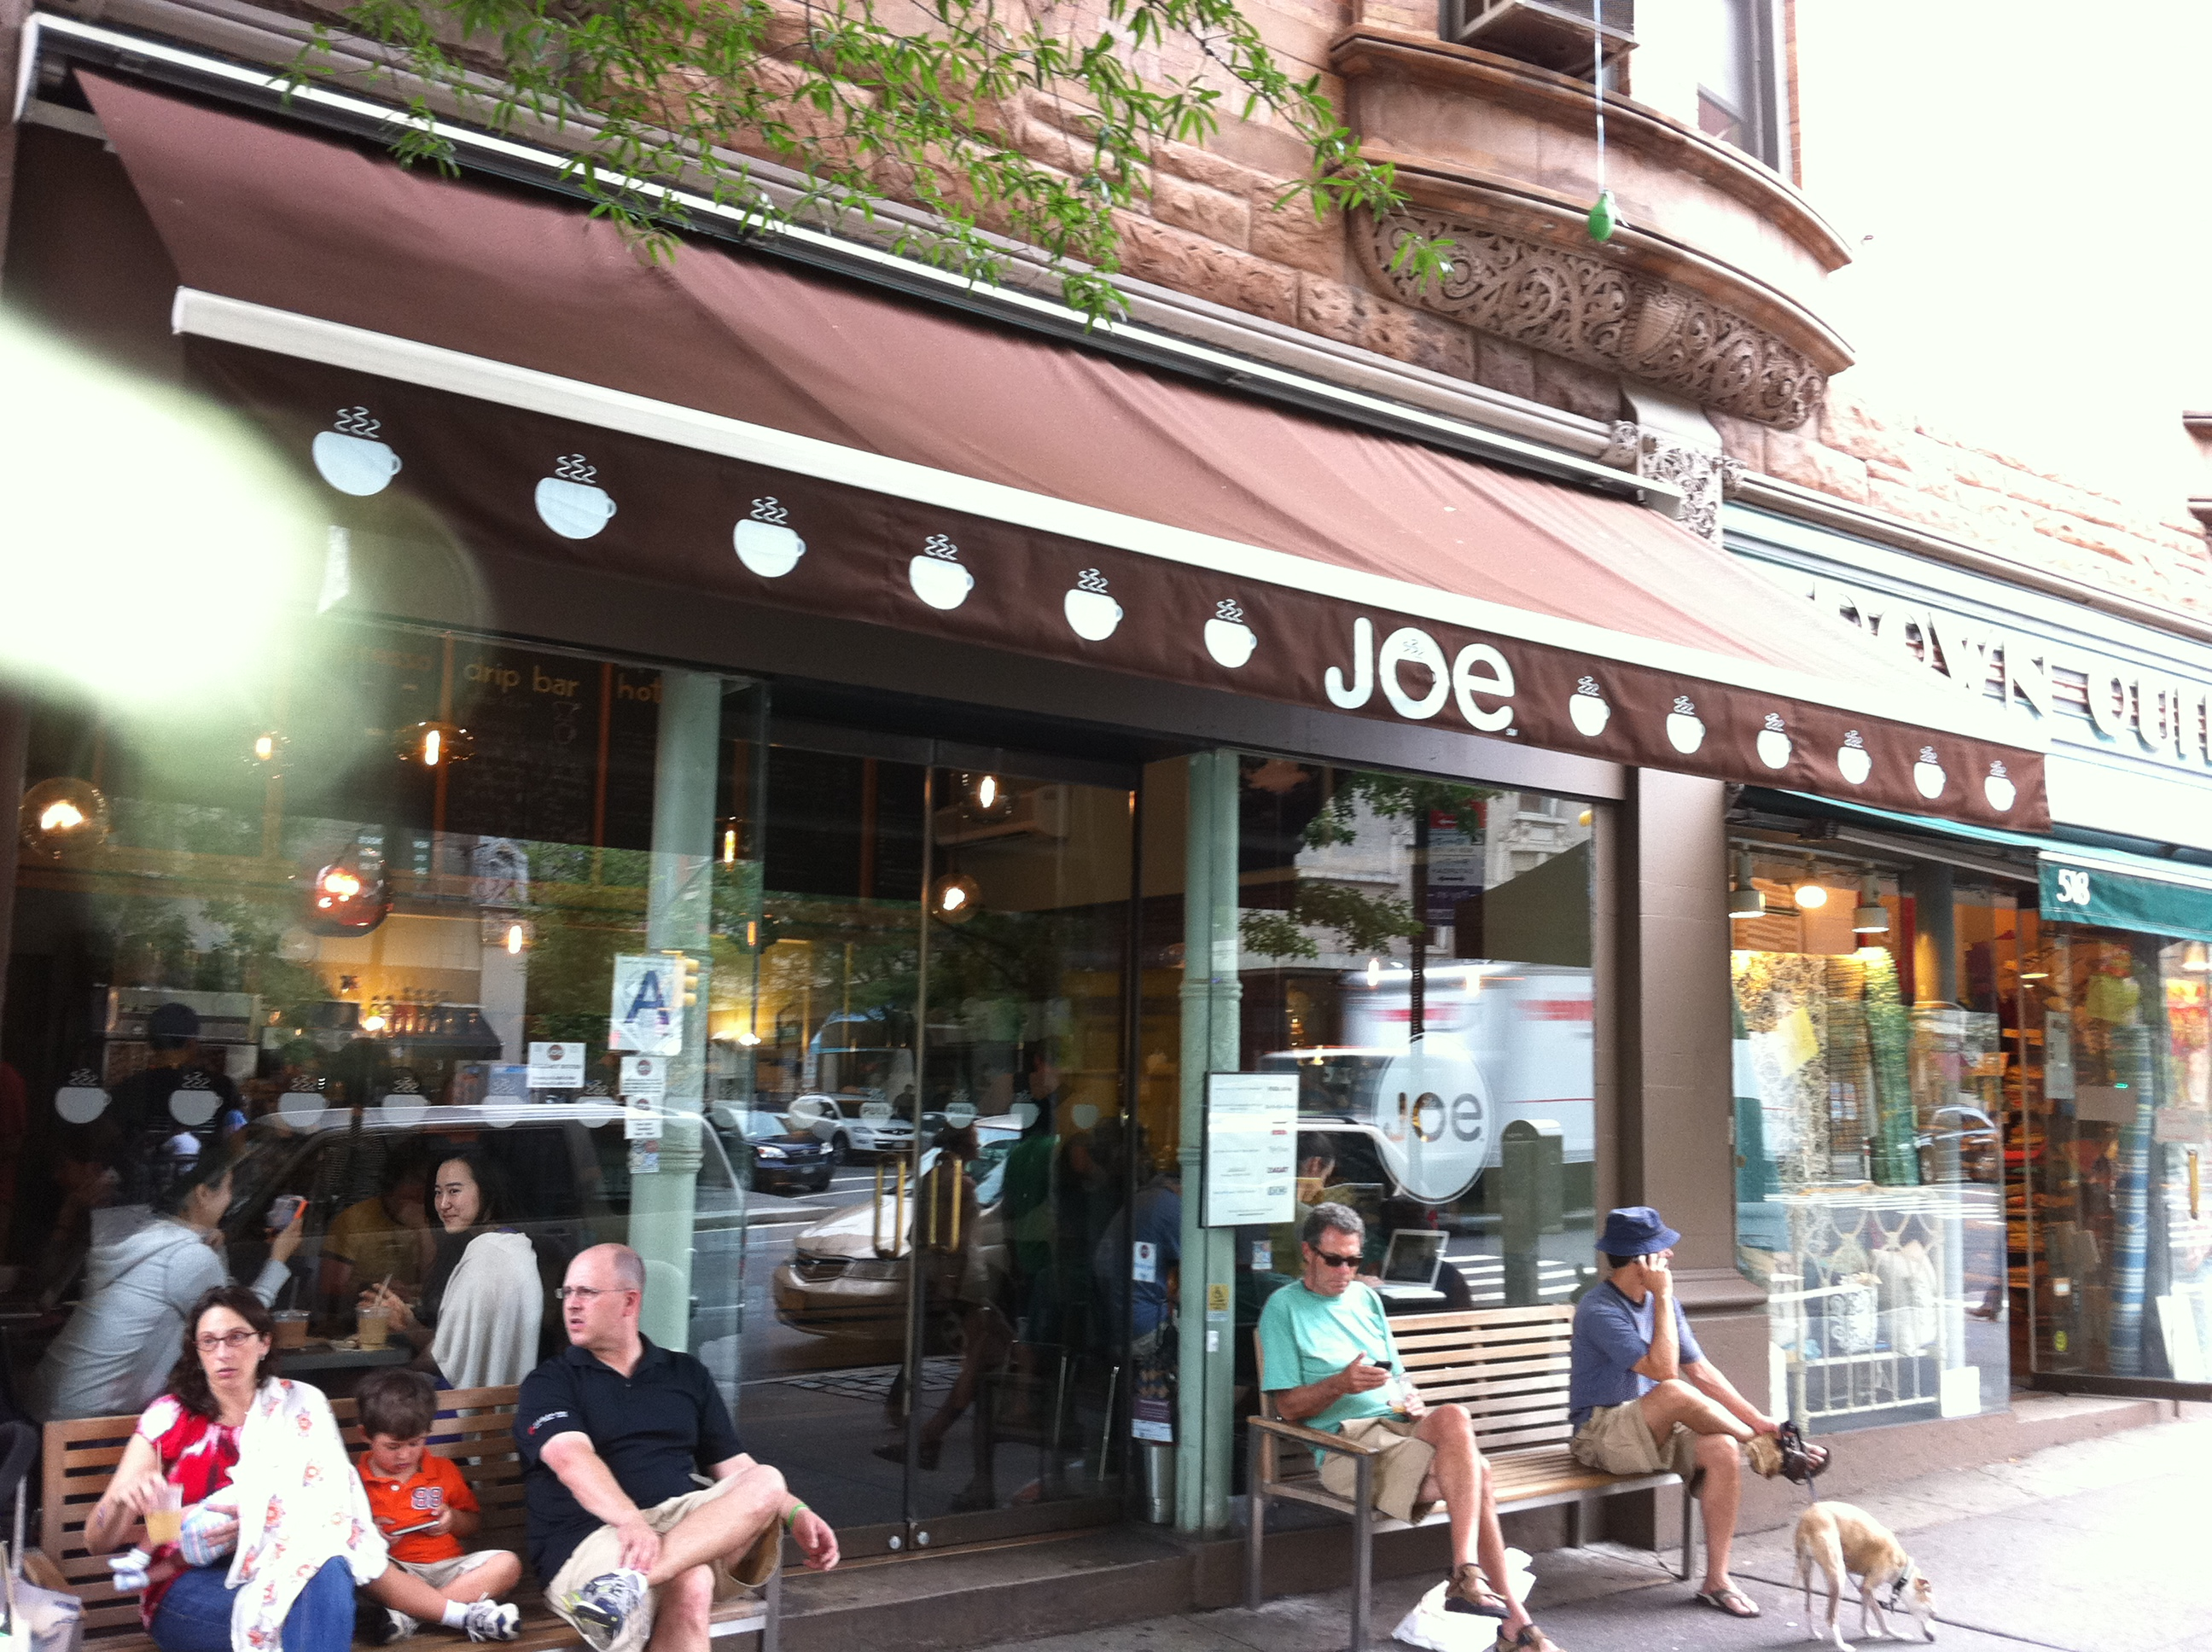 Joe the Art of Coffee - Storefront